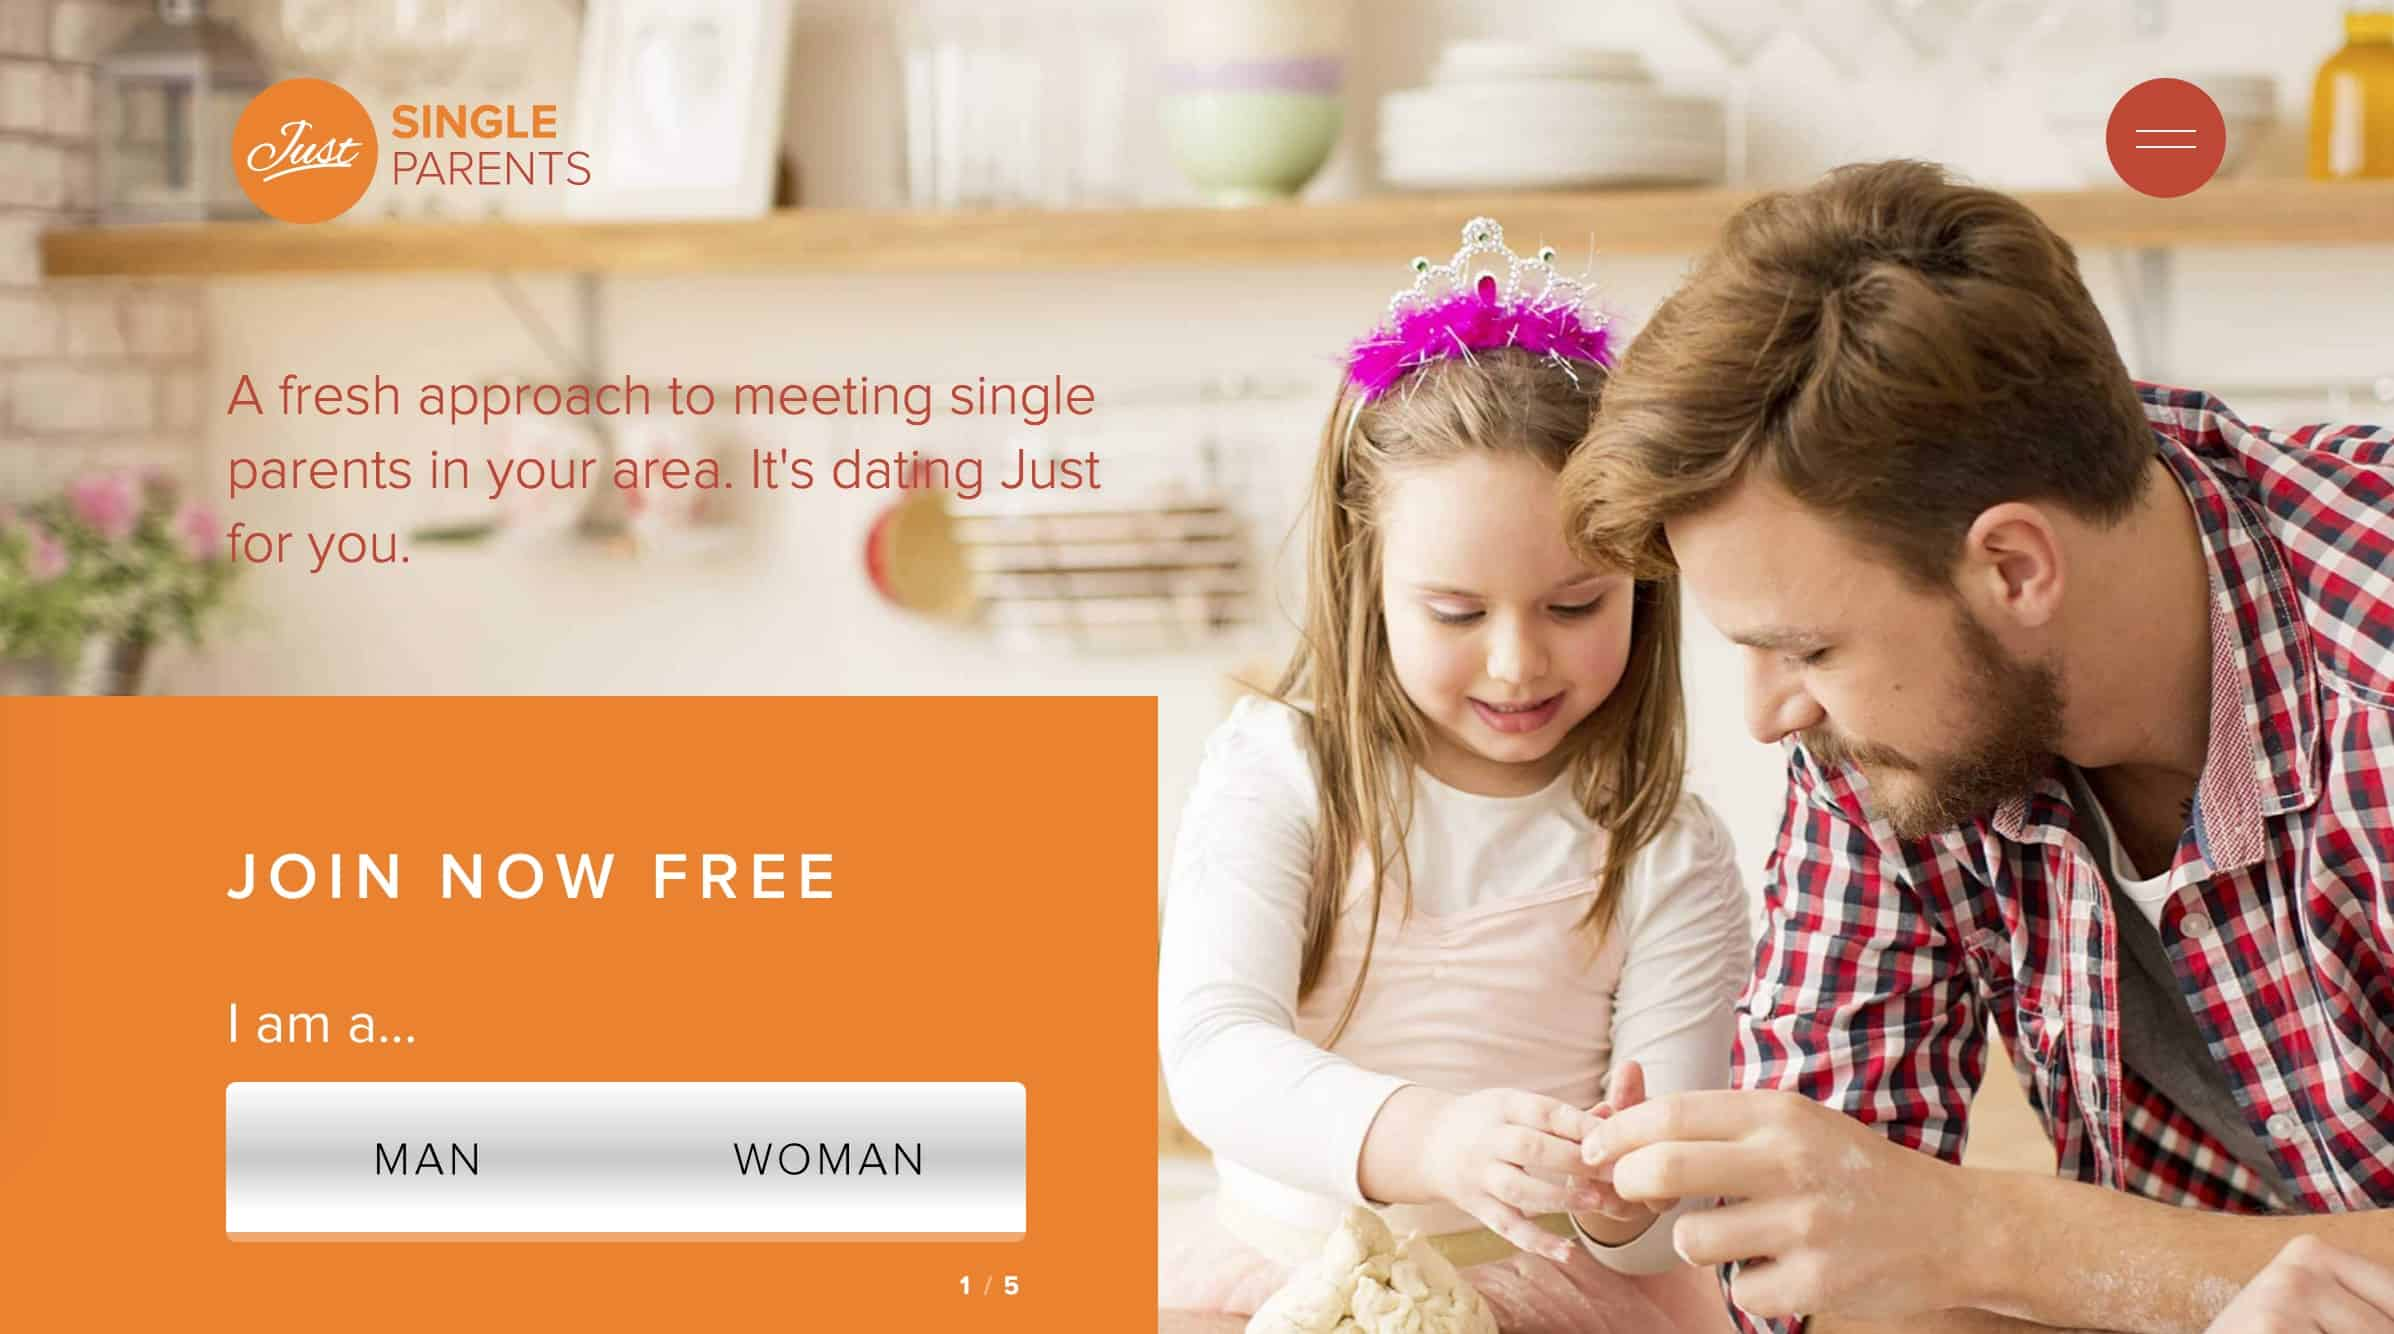 divide single parent dating site Single parent meet is a comprehensive dating service which allows single parents to connect with other single parents you can send emails or talk using an instant messenger you can explore the site and its features for free, and the database includes plenty of profiles for you to browse.